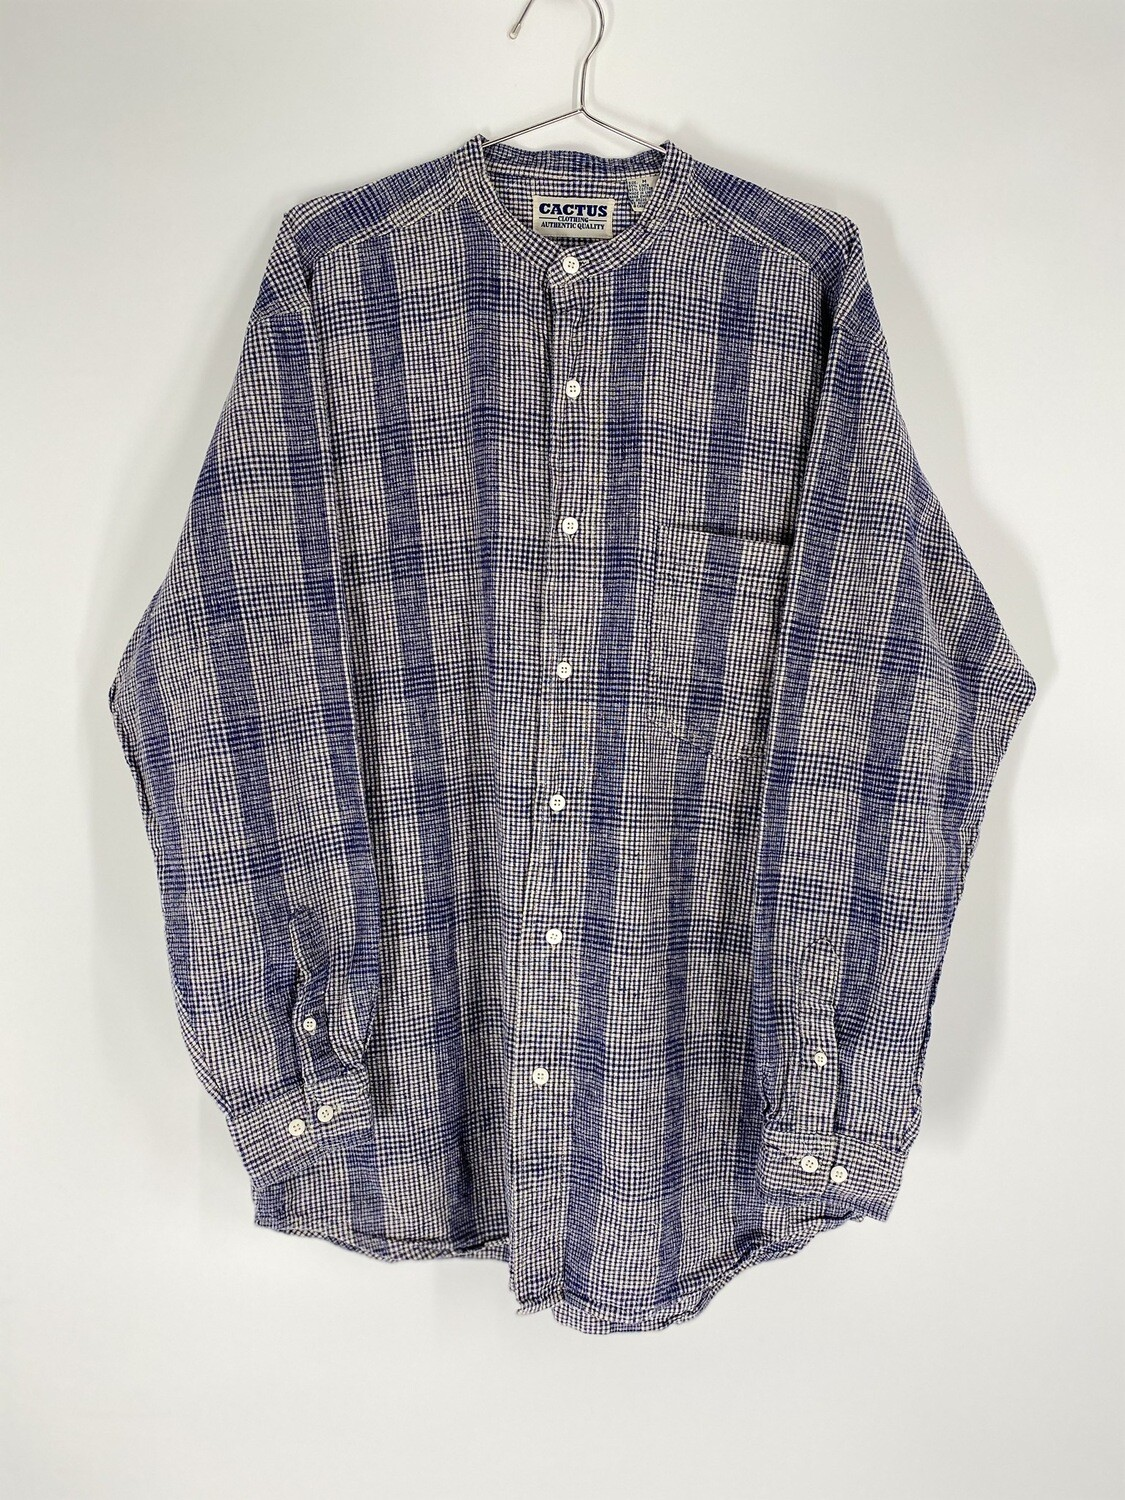 Cactus Clothing Blue Plaid Mandarin Collared Button Up Size M